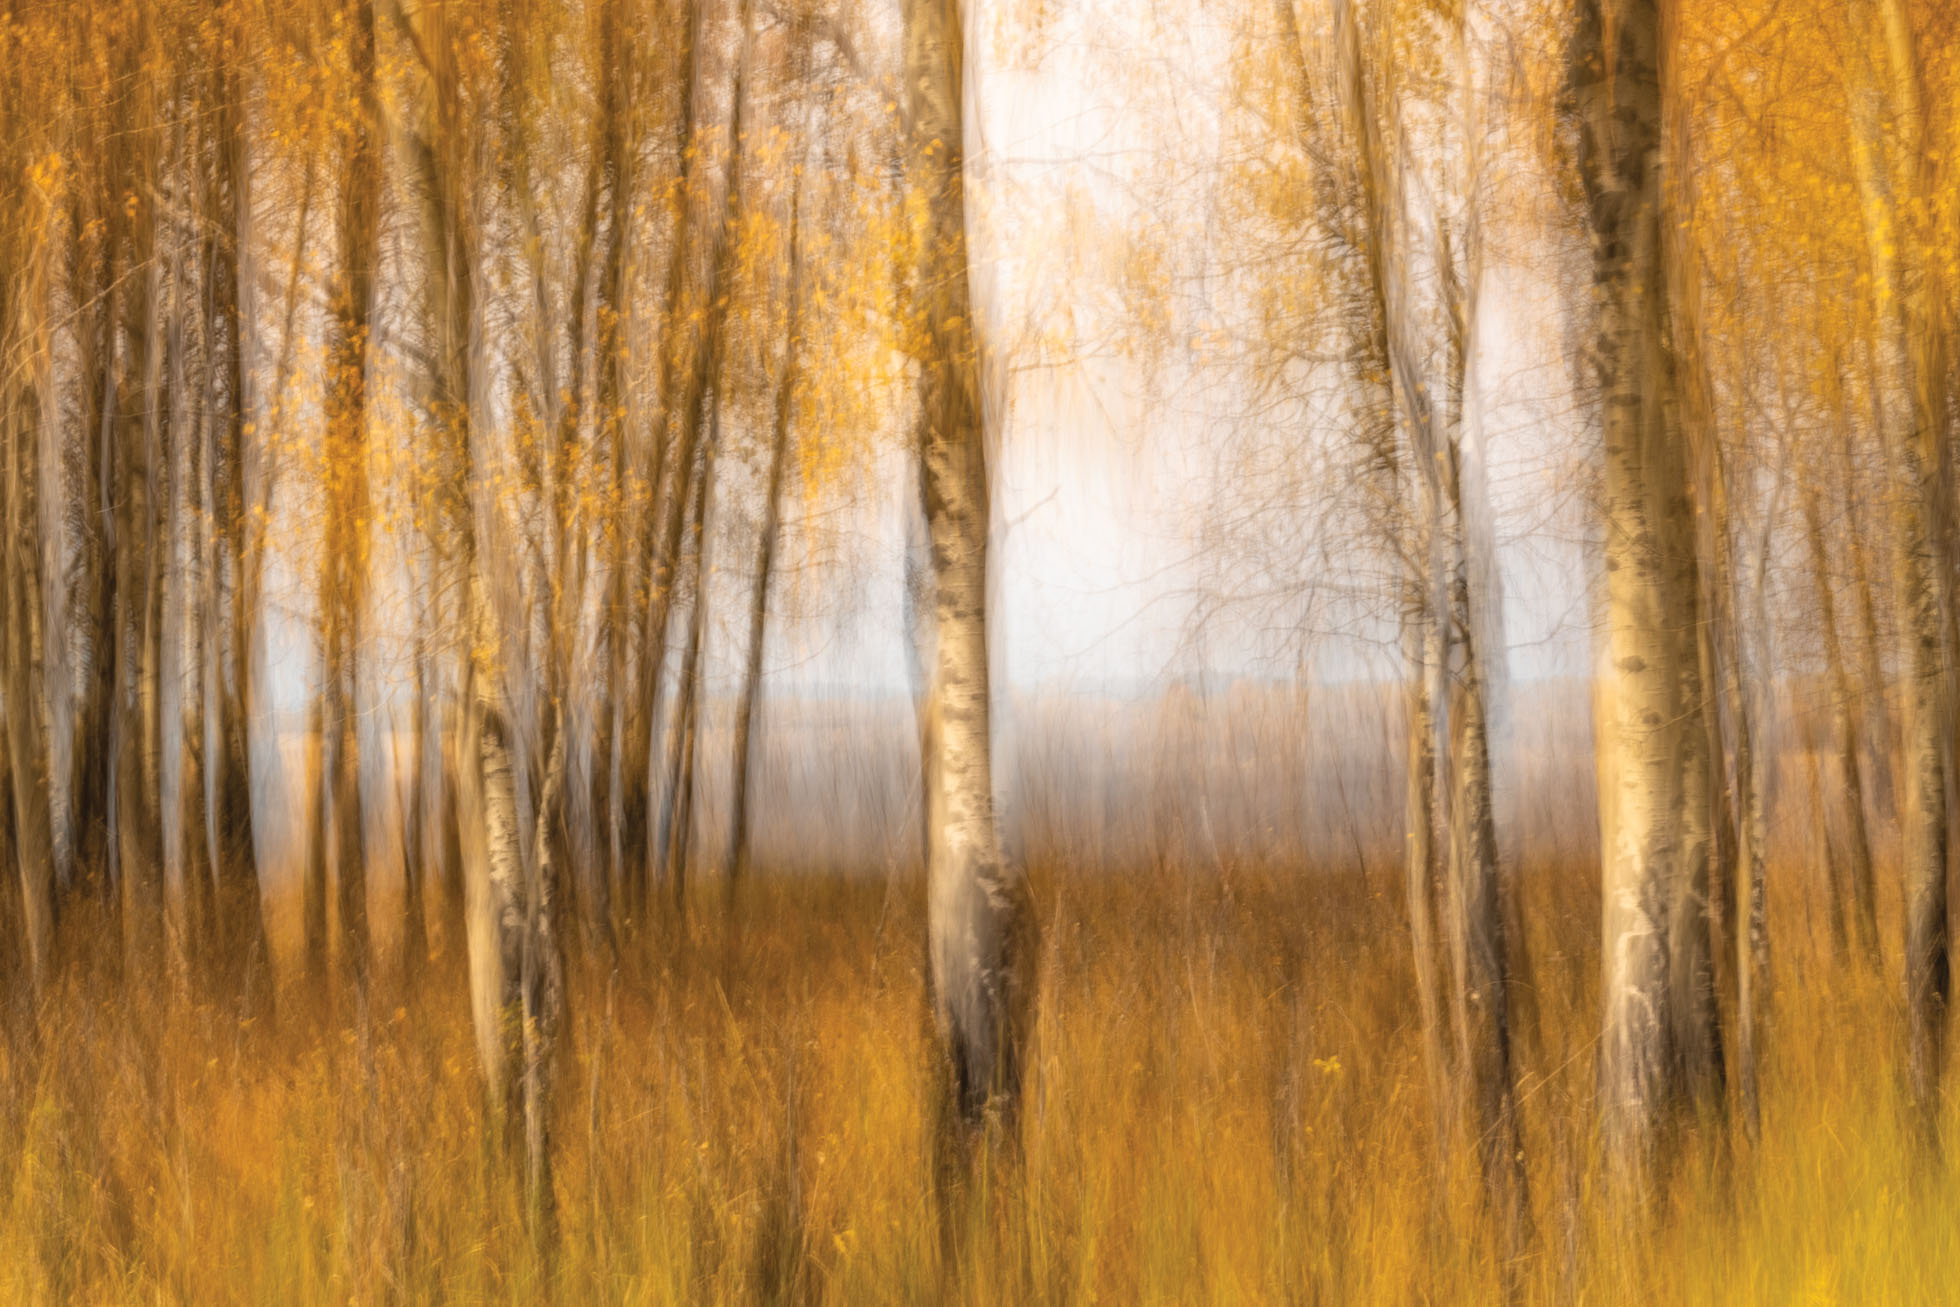 A little abstract panning in the Tetons during the Magic in the Tetons retreat